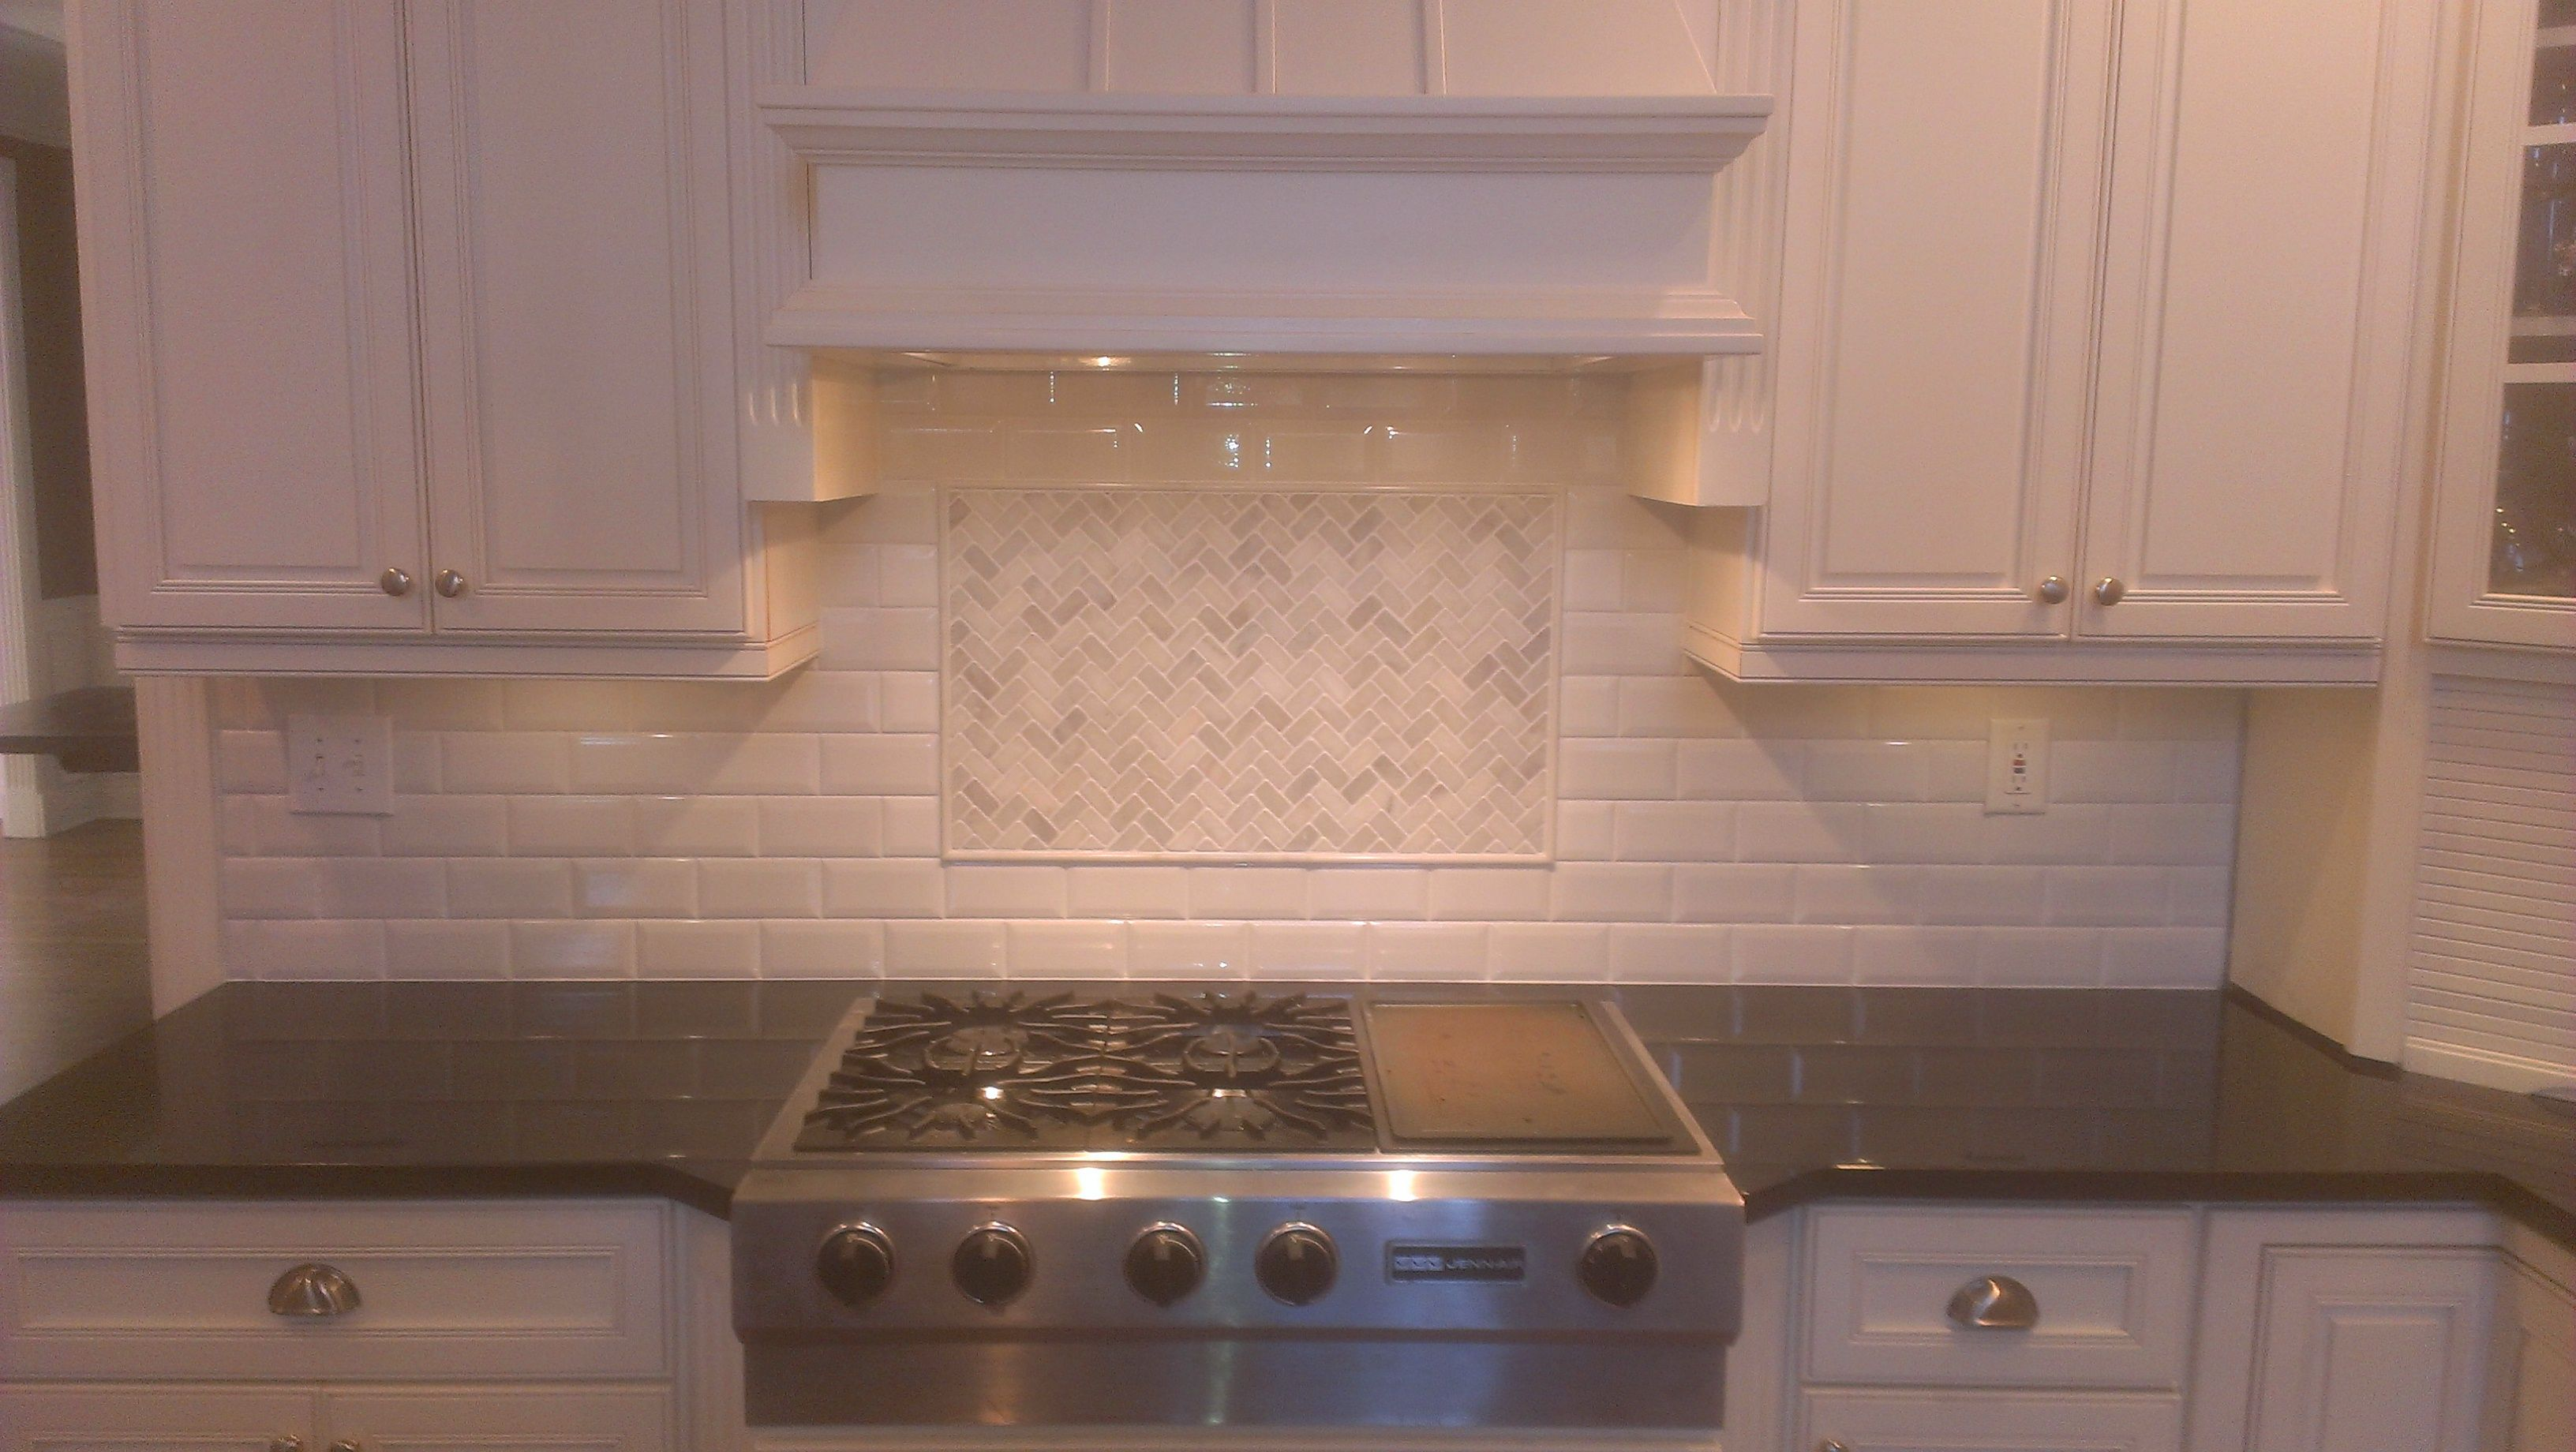 Crackle Subway Tile Subway Tile Backsplash Kitchen